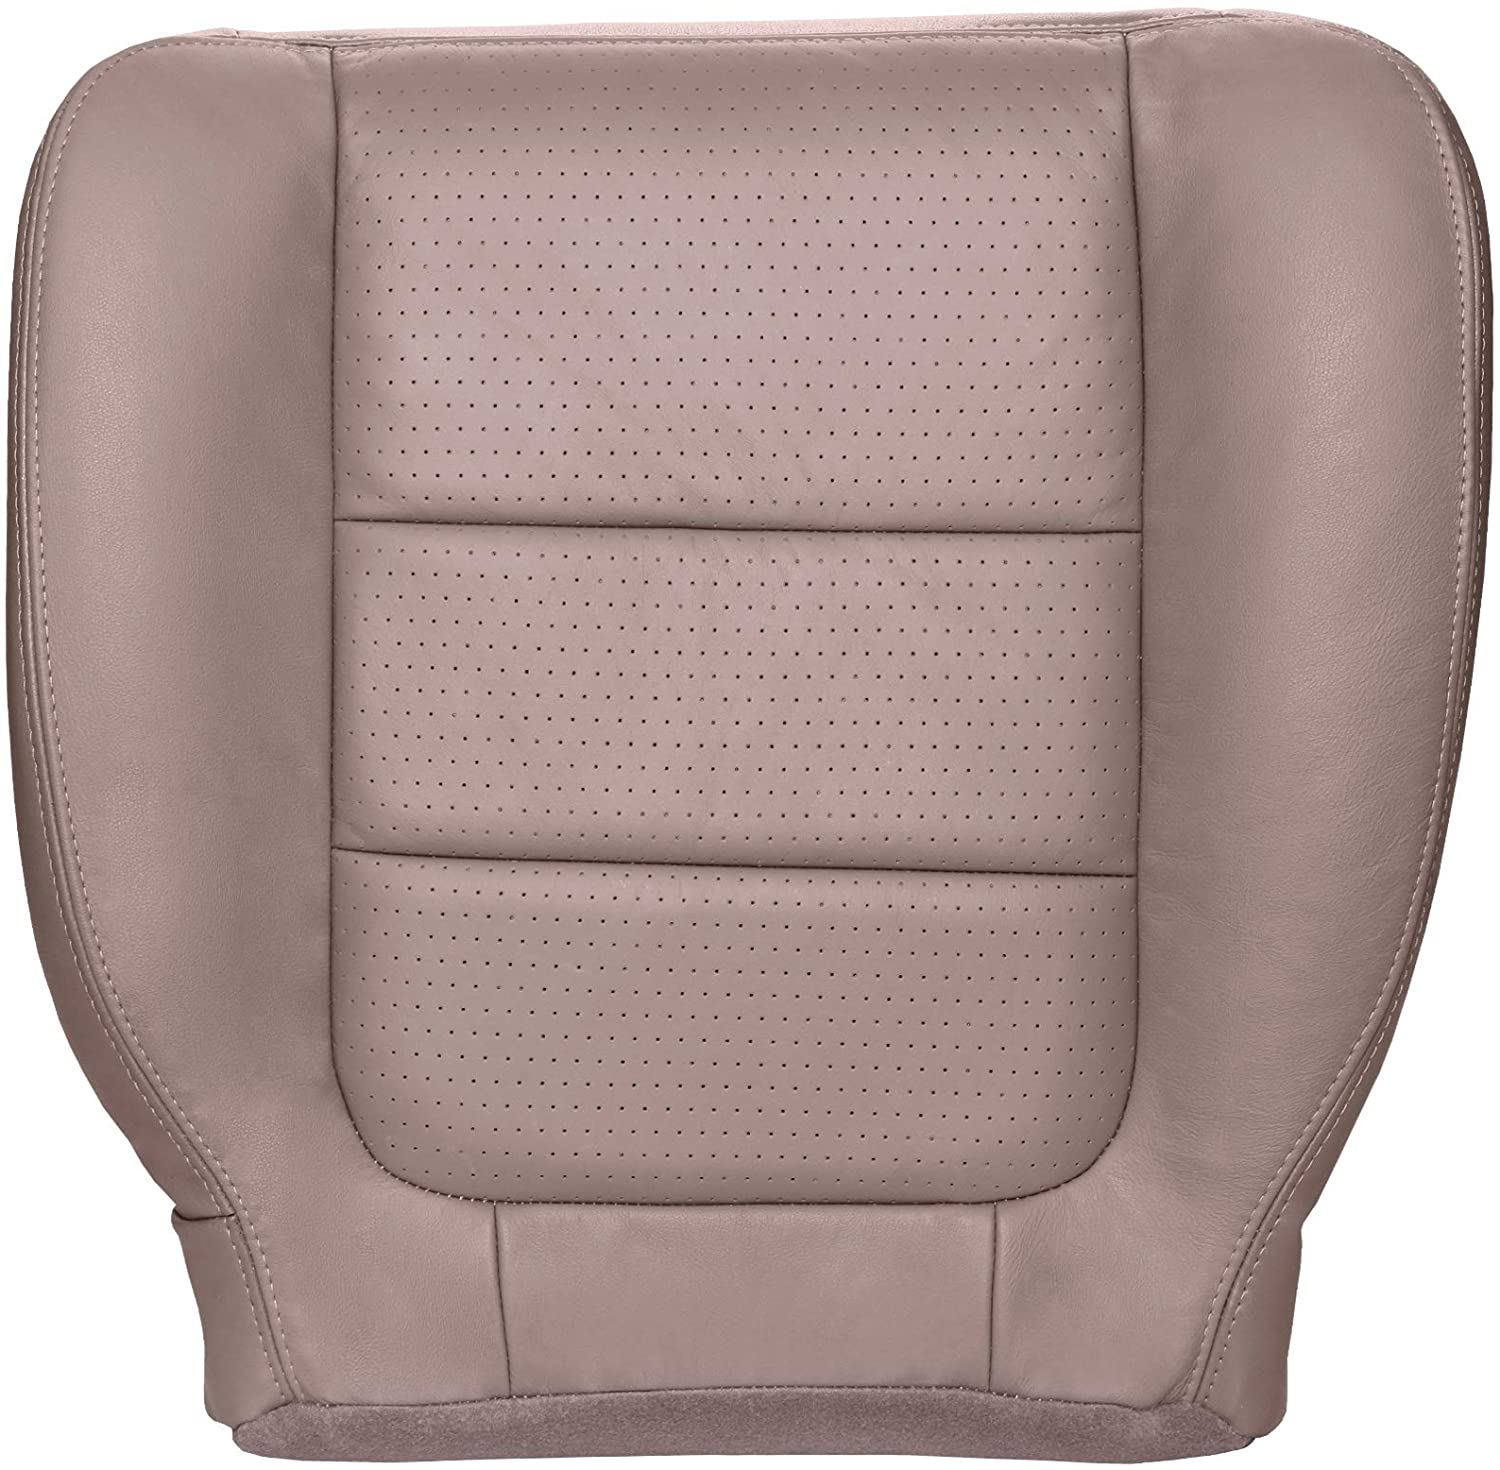 The Seat Shop Passenger Bottom Replacement Perforated Leather Seat Cover - Medium Parchment Tan (Compatible with 2001-2003 Ford F250 and F350 Super Duty Lariat Extended Cab)